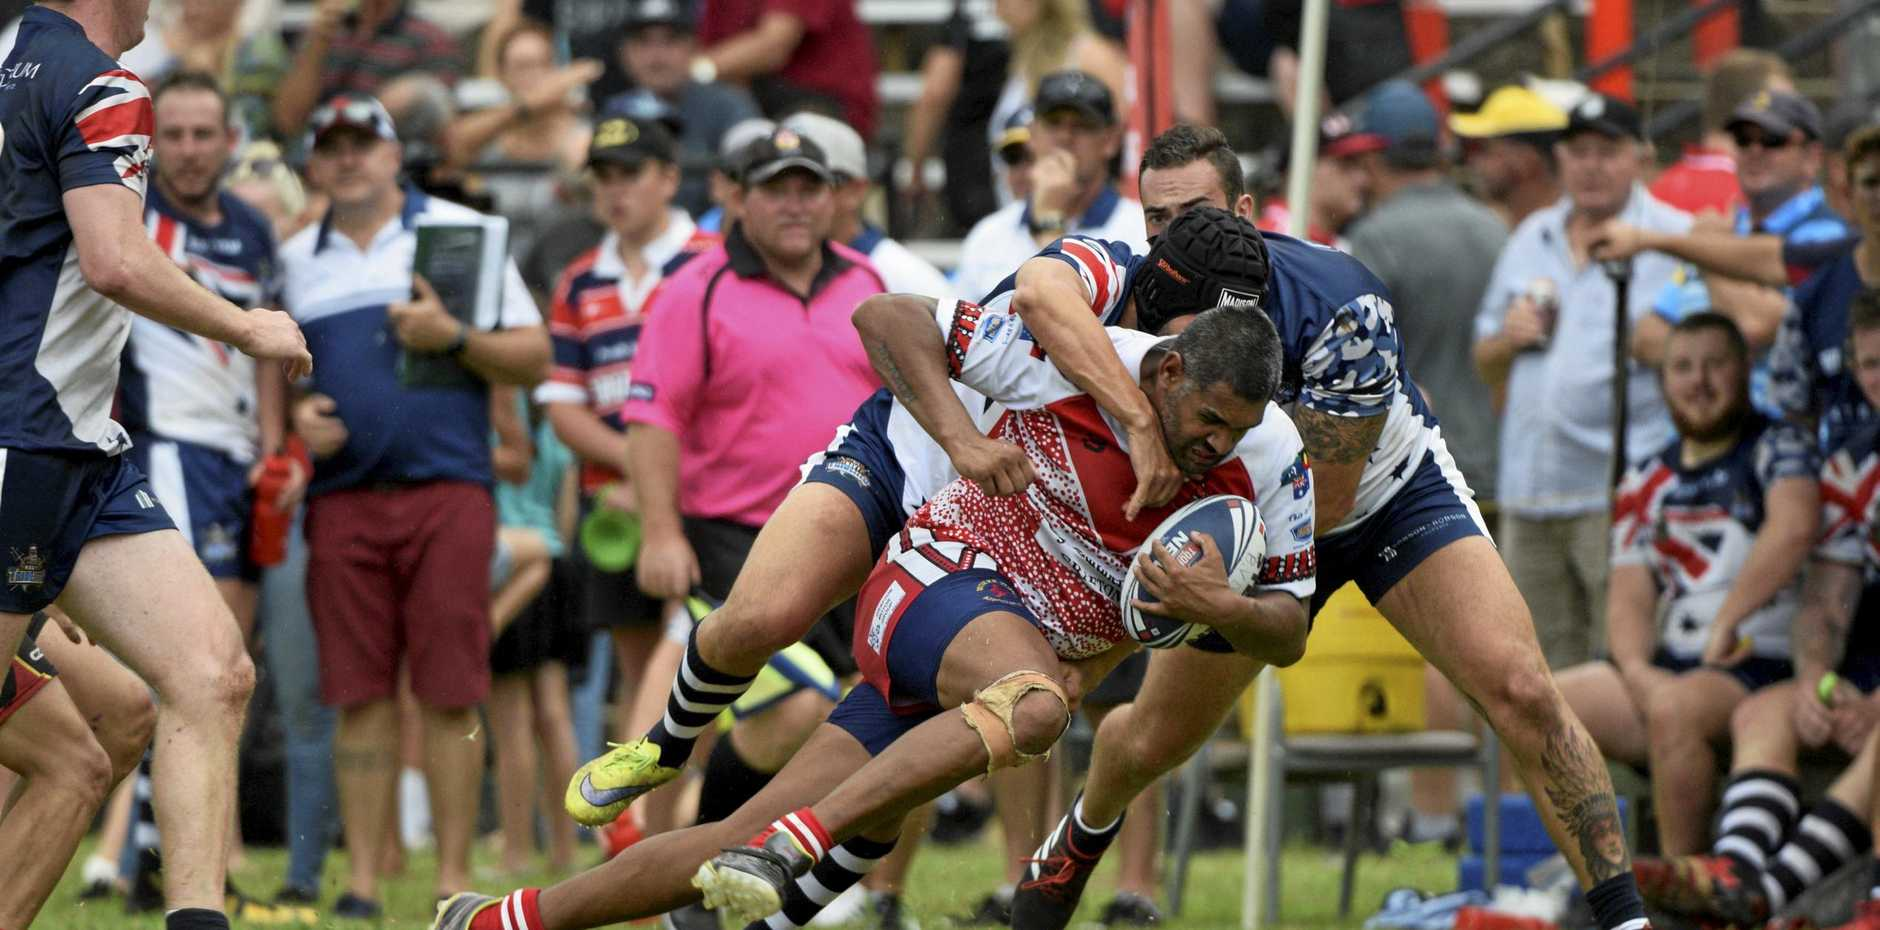 FIGHT FOR METRES: A familiar face in Dwayn Duke made his return for the Rebels.